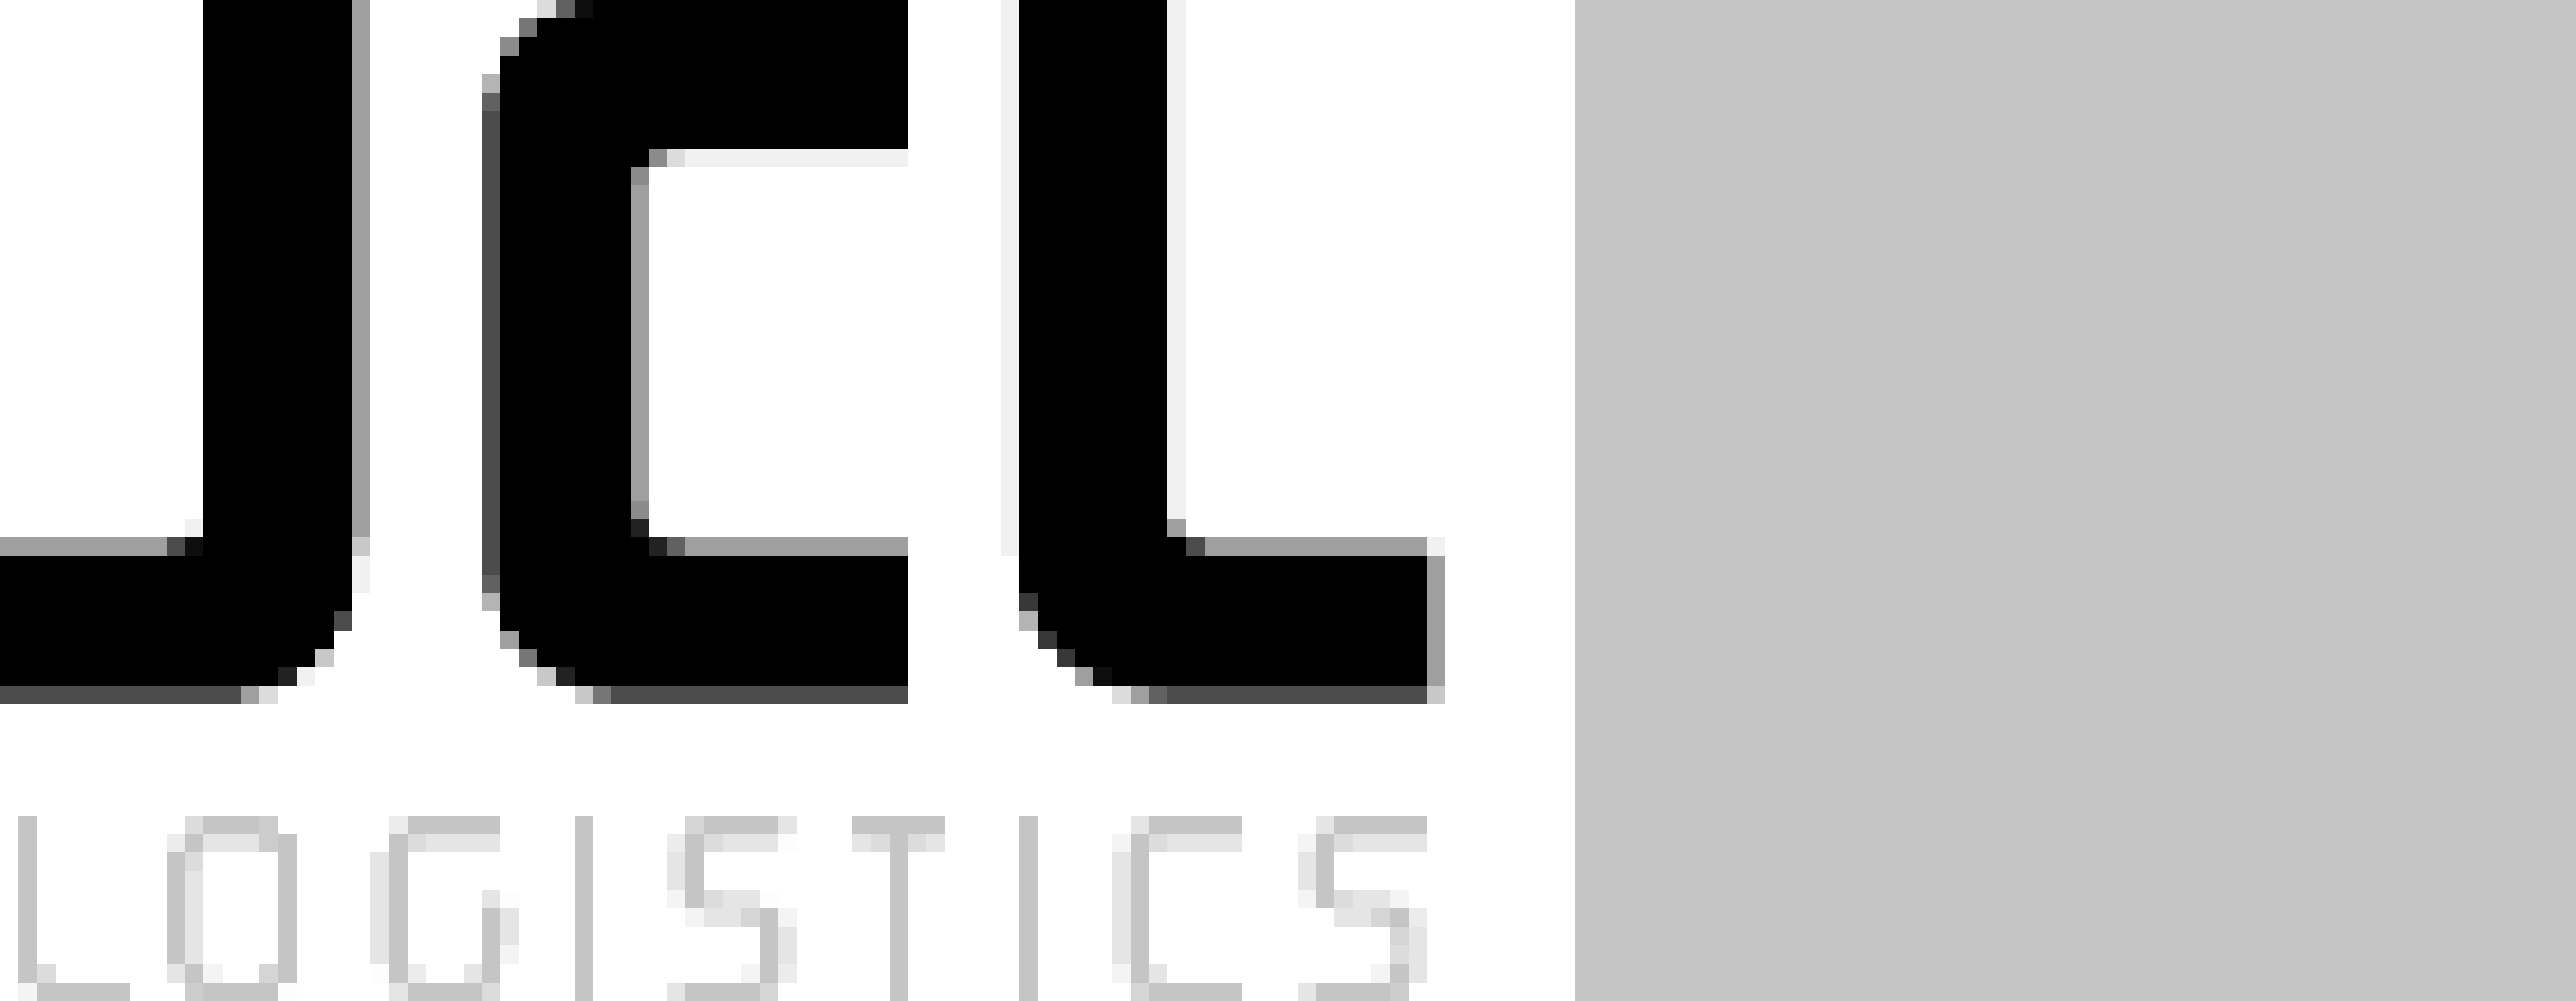 ETL-Transport_Referenzen_jcl_logo_t2-blackwhite